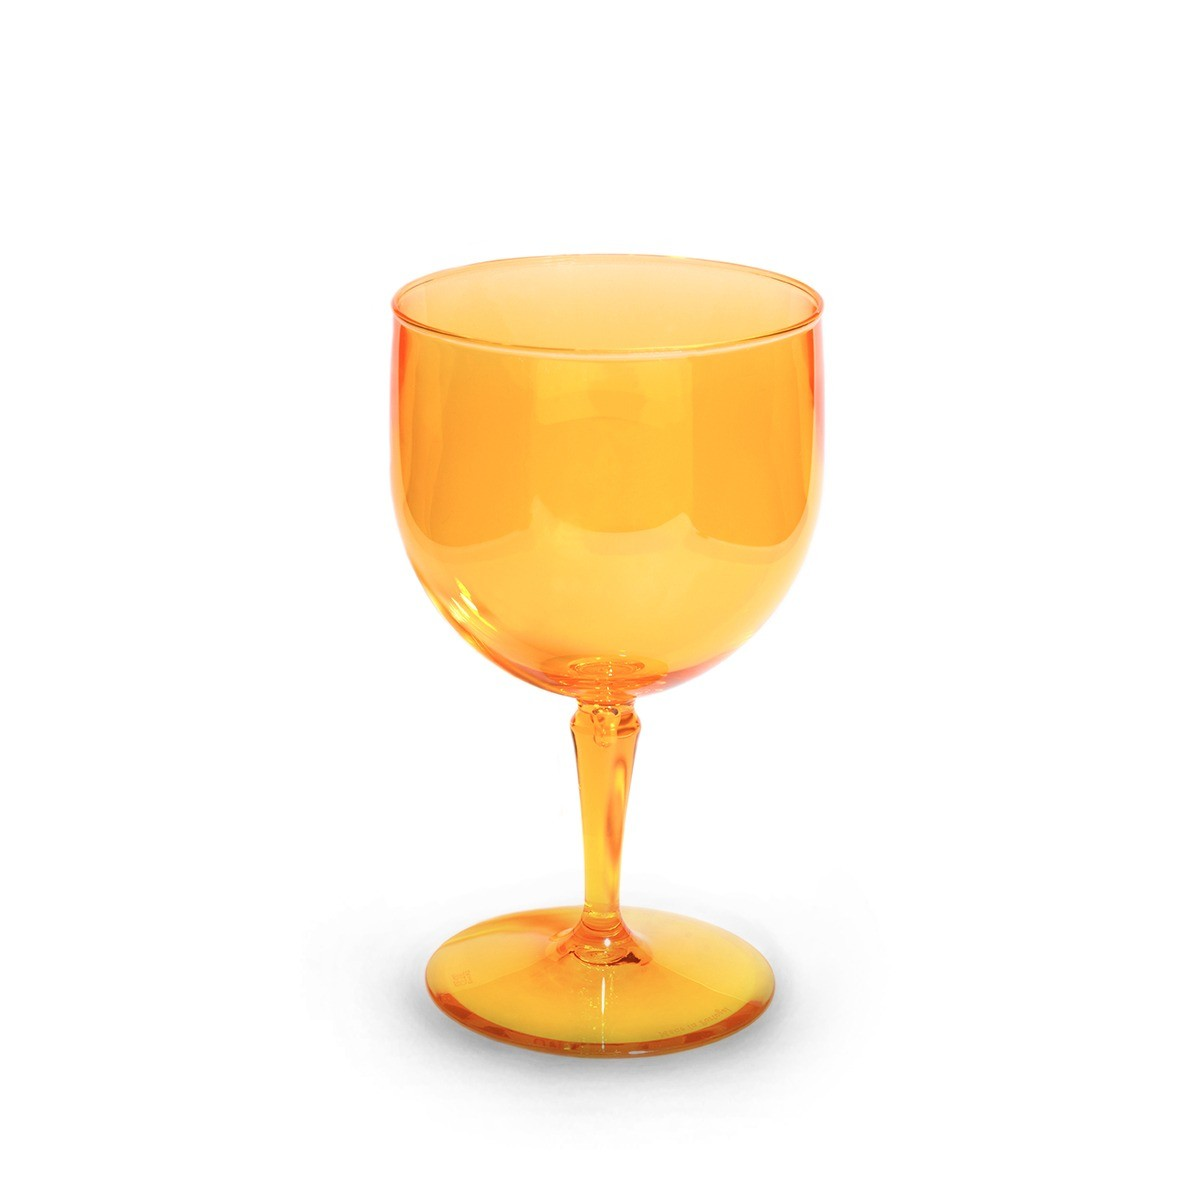 Verre piscine orange incassable et personnalisable.